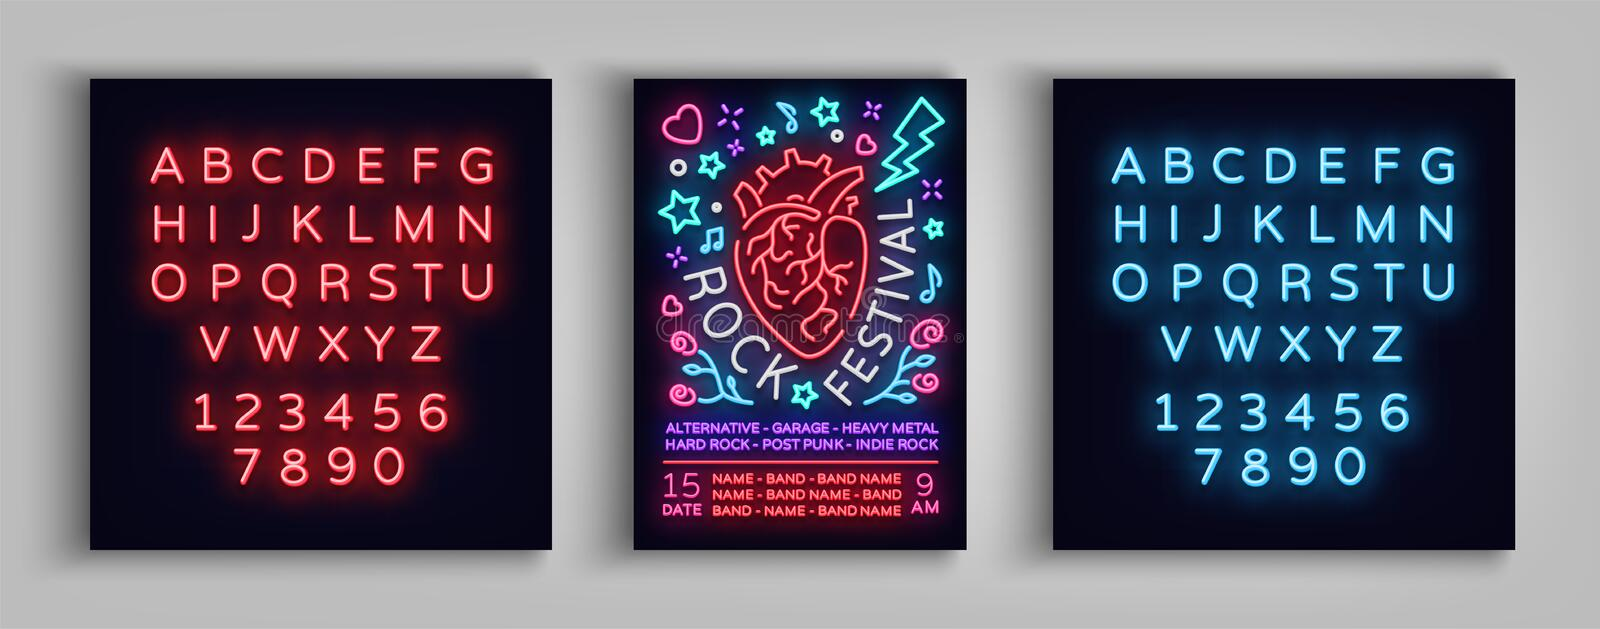 Invitation to Rock Festival. Typography, Poster in neon style, Flyer Design template for rock festival, concert, party royalty free illustration